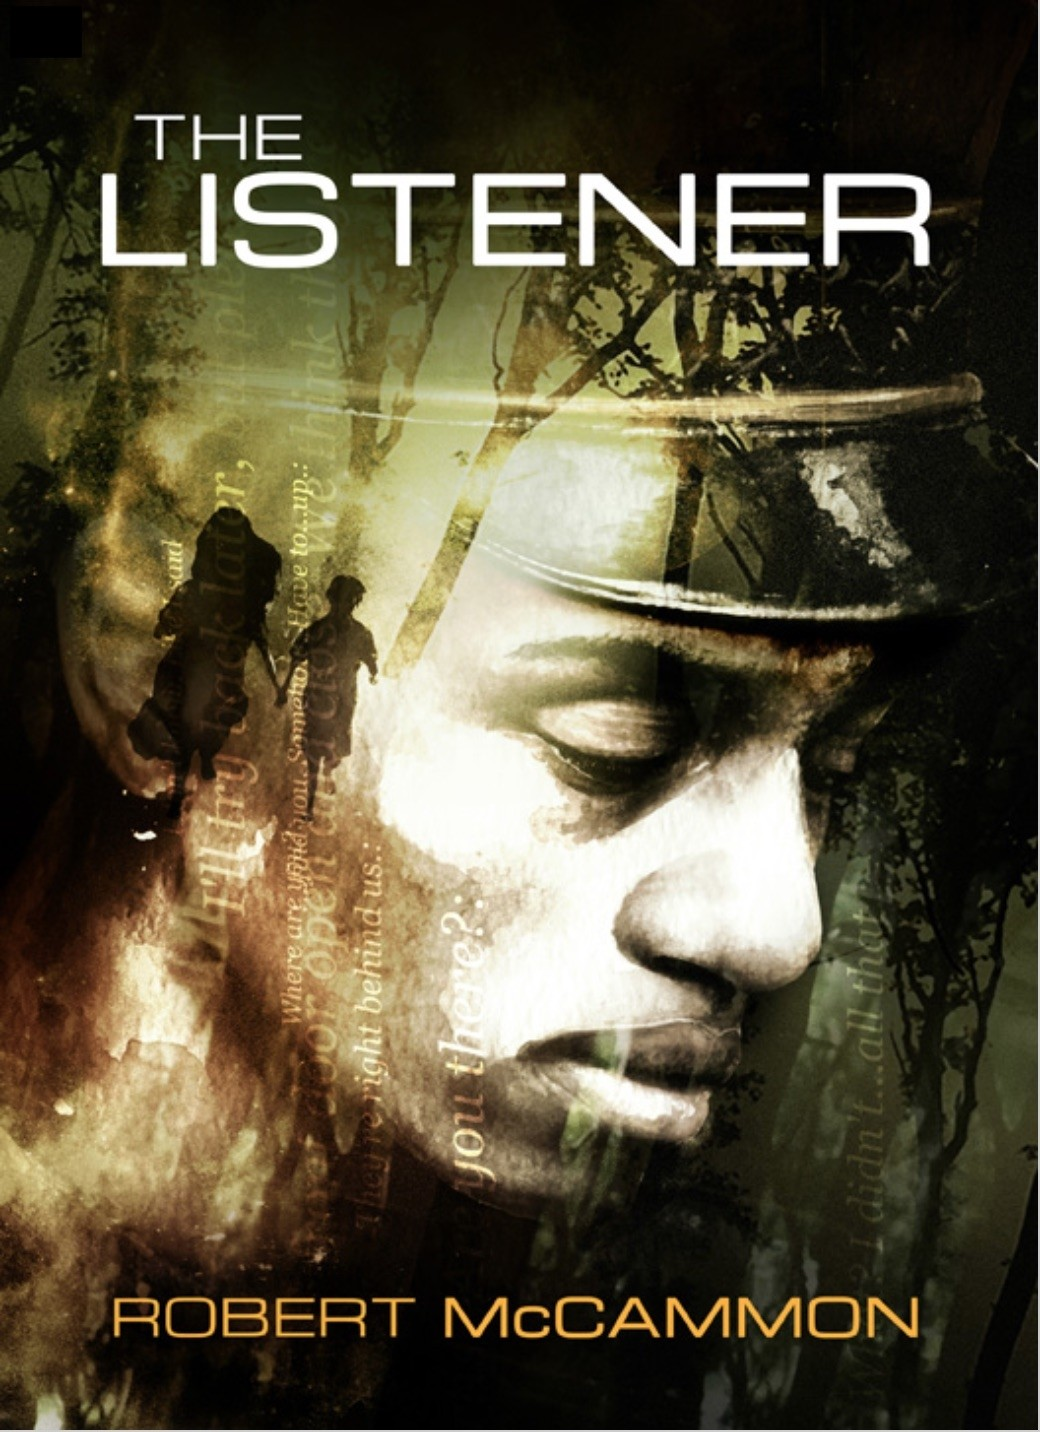 The Listener UK by Robert McCammon